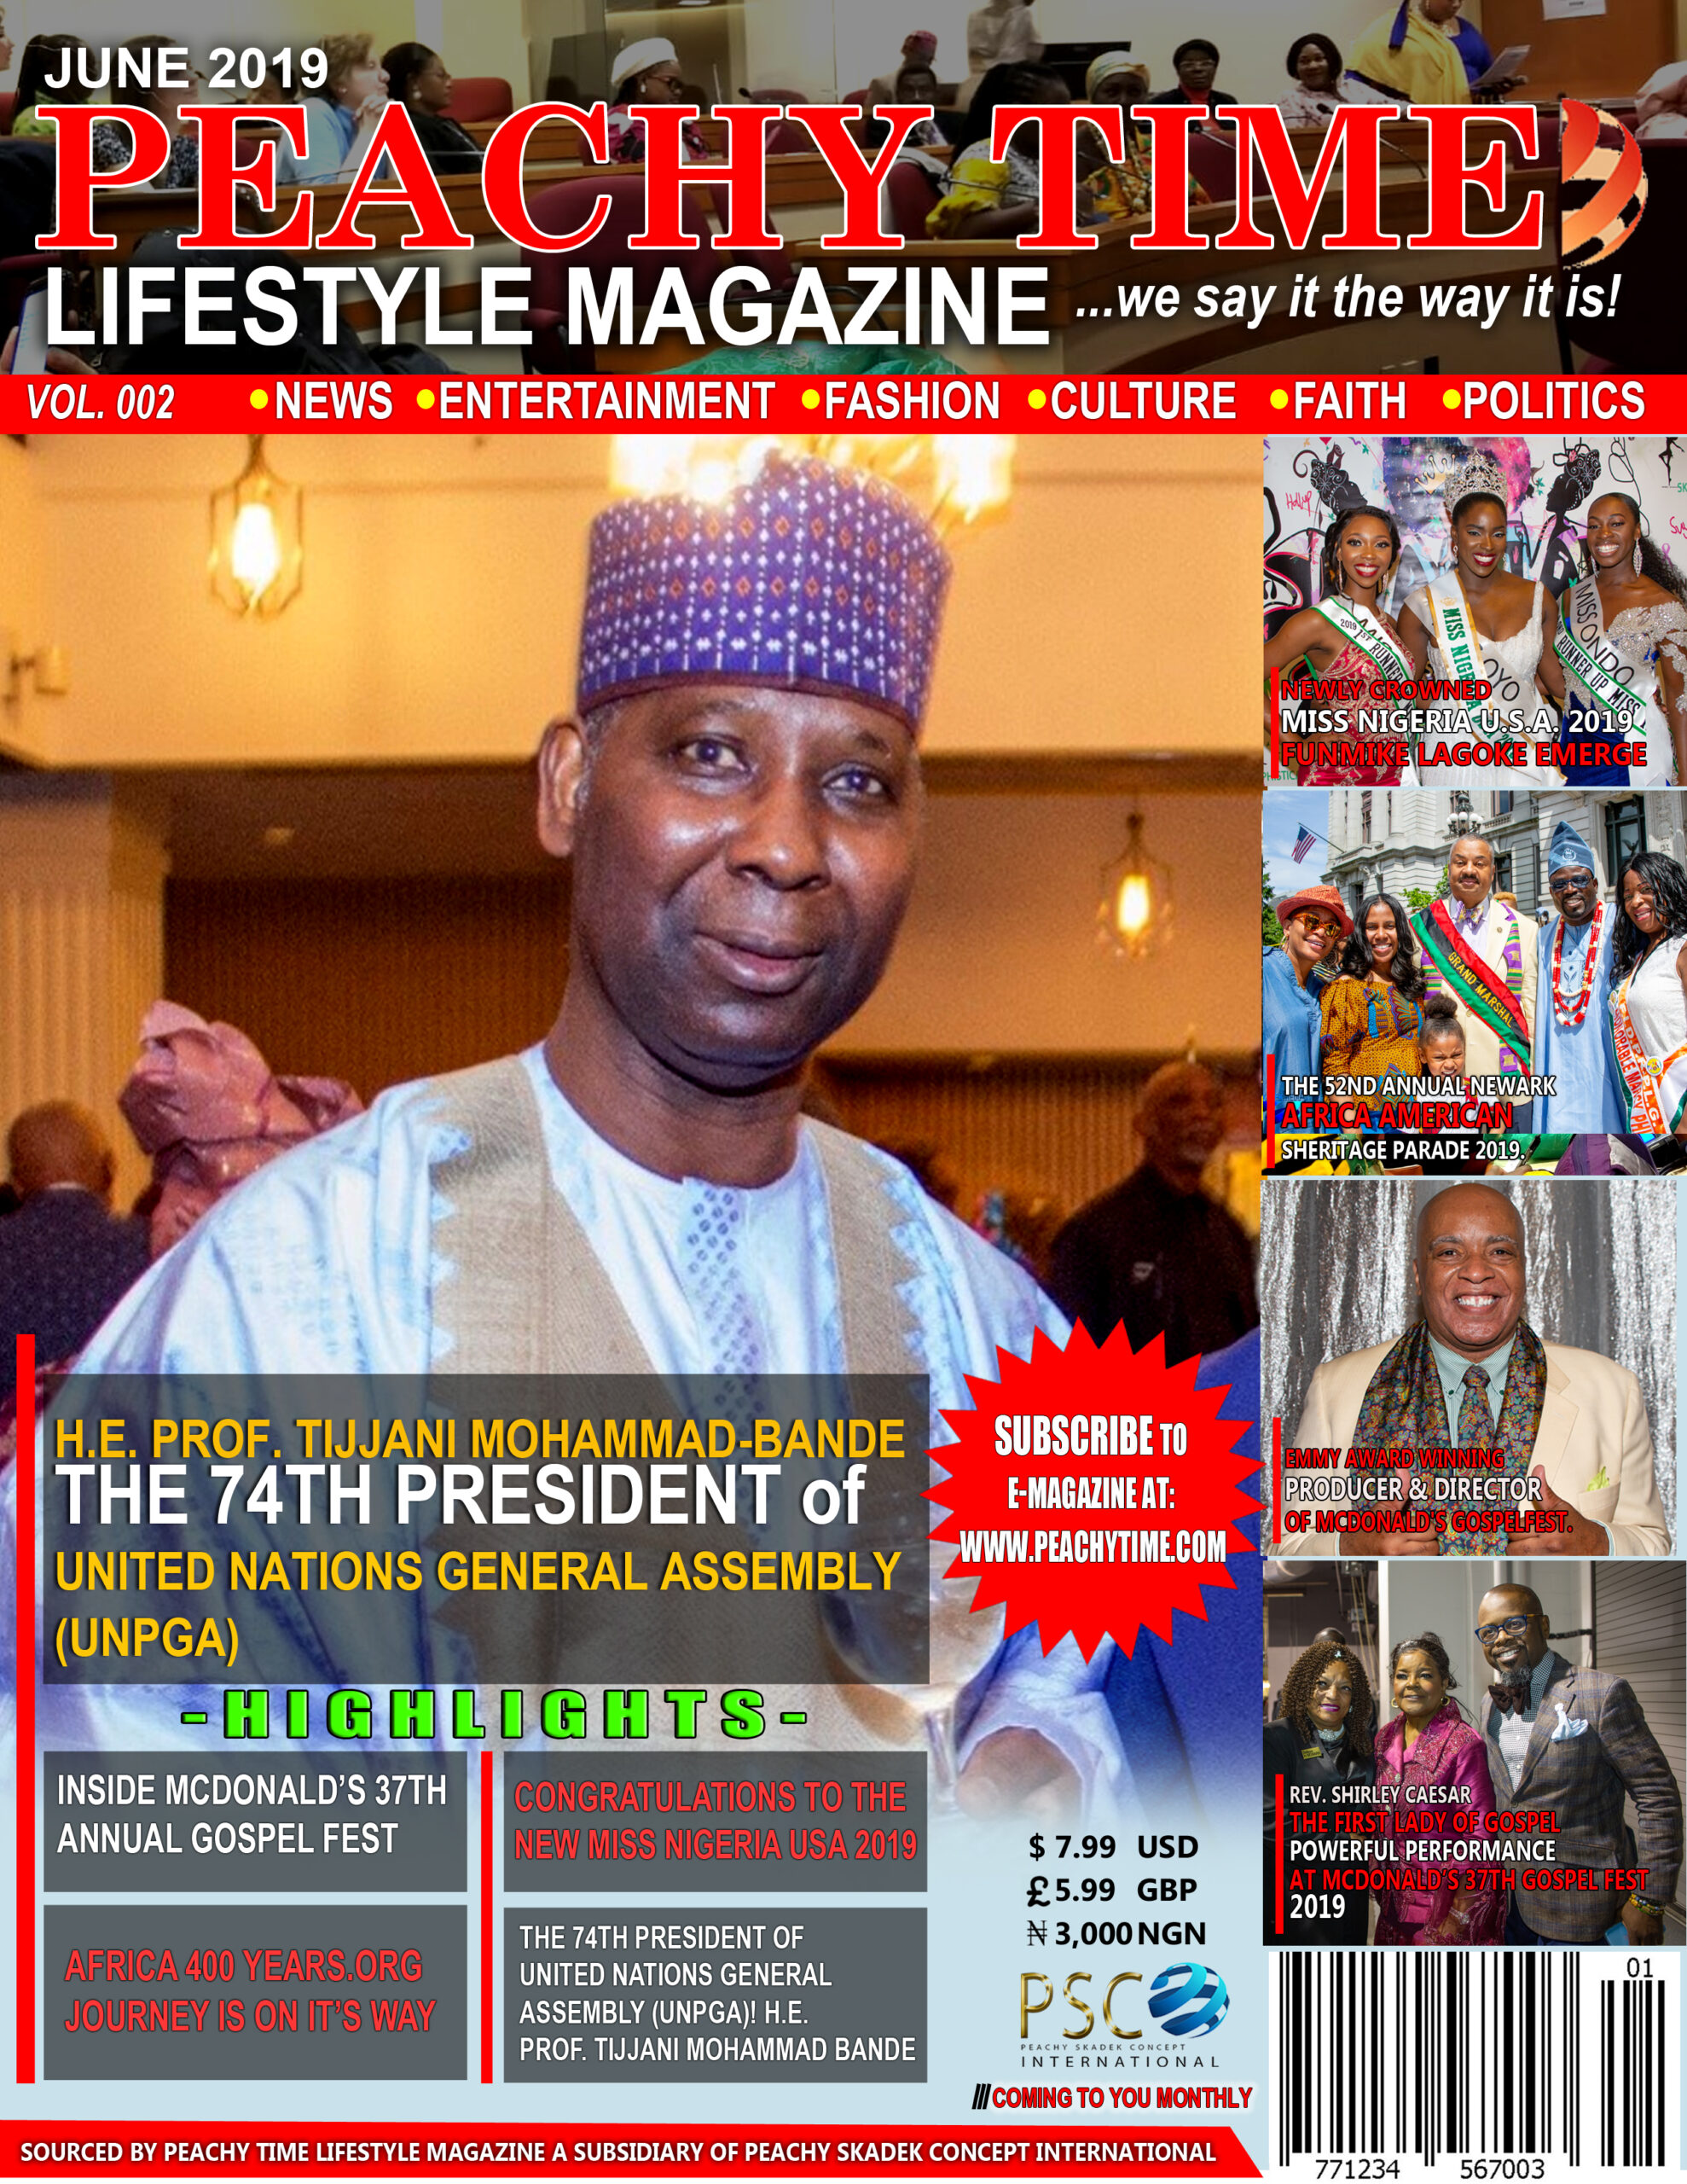 PEACHY TIME LEFESTYLE MAGAZINE COVER SAMPLE - B